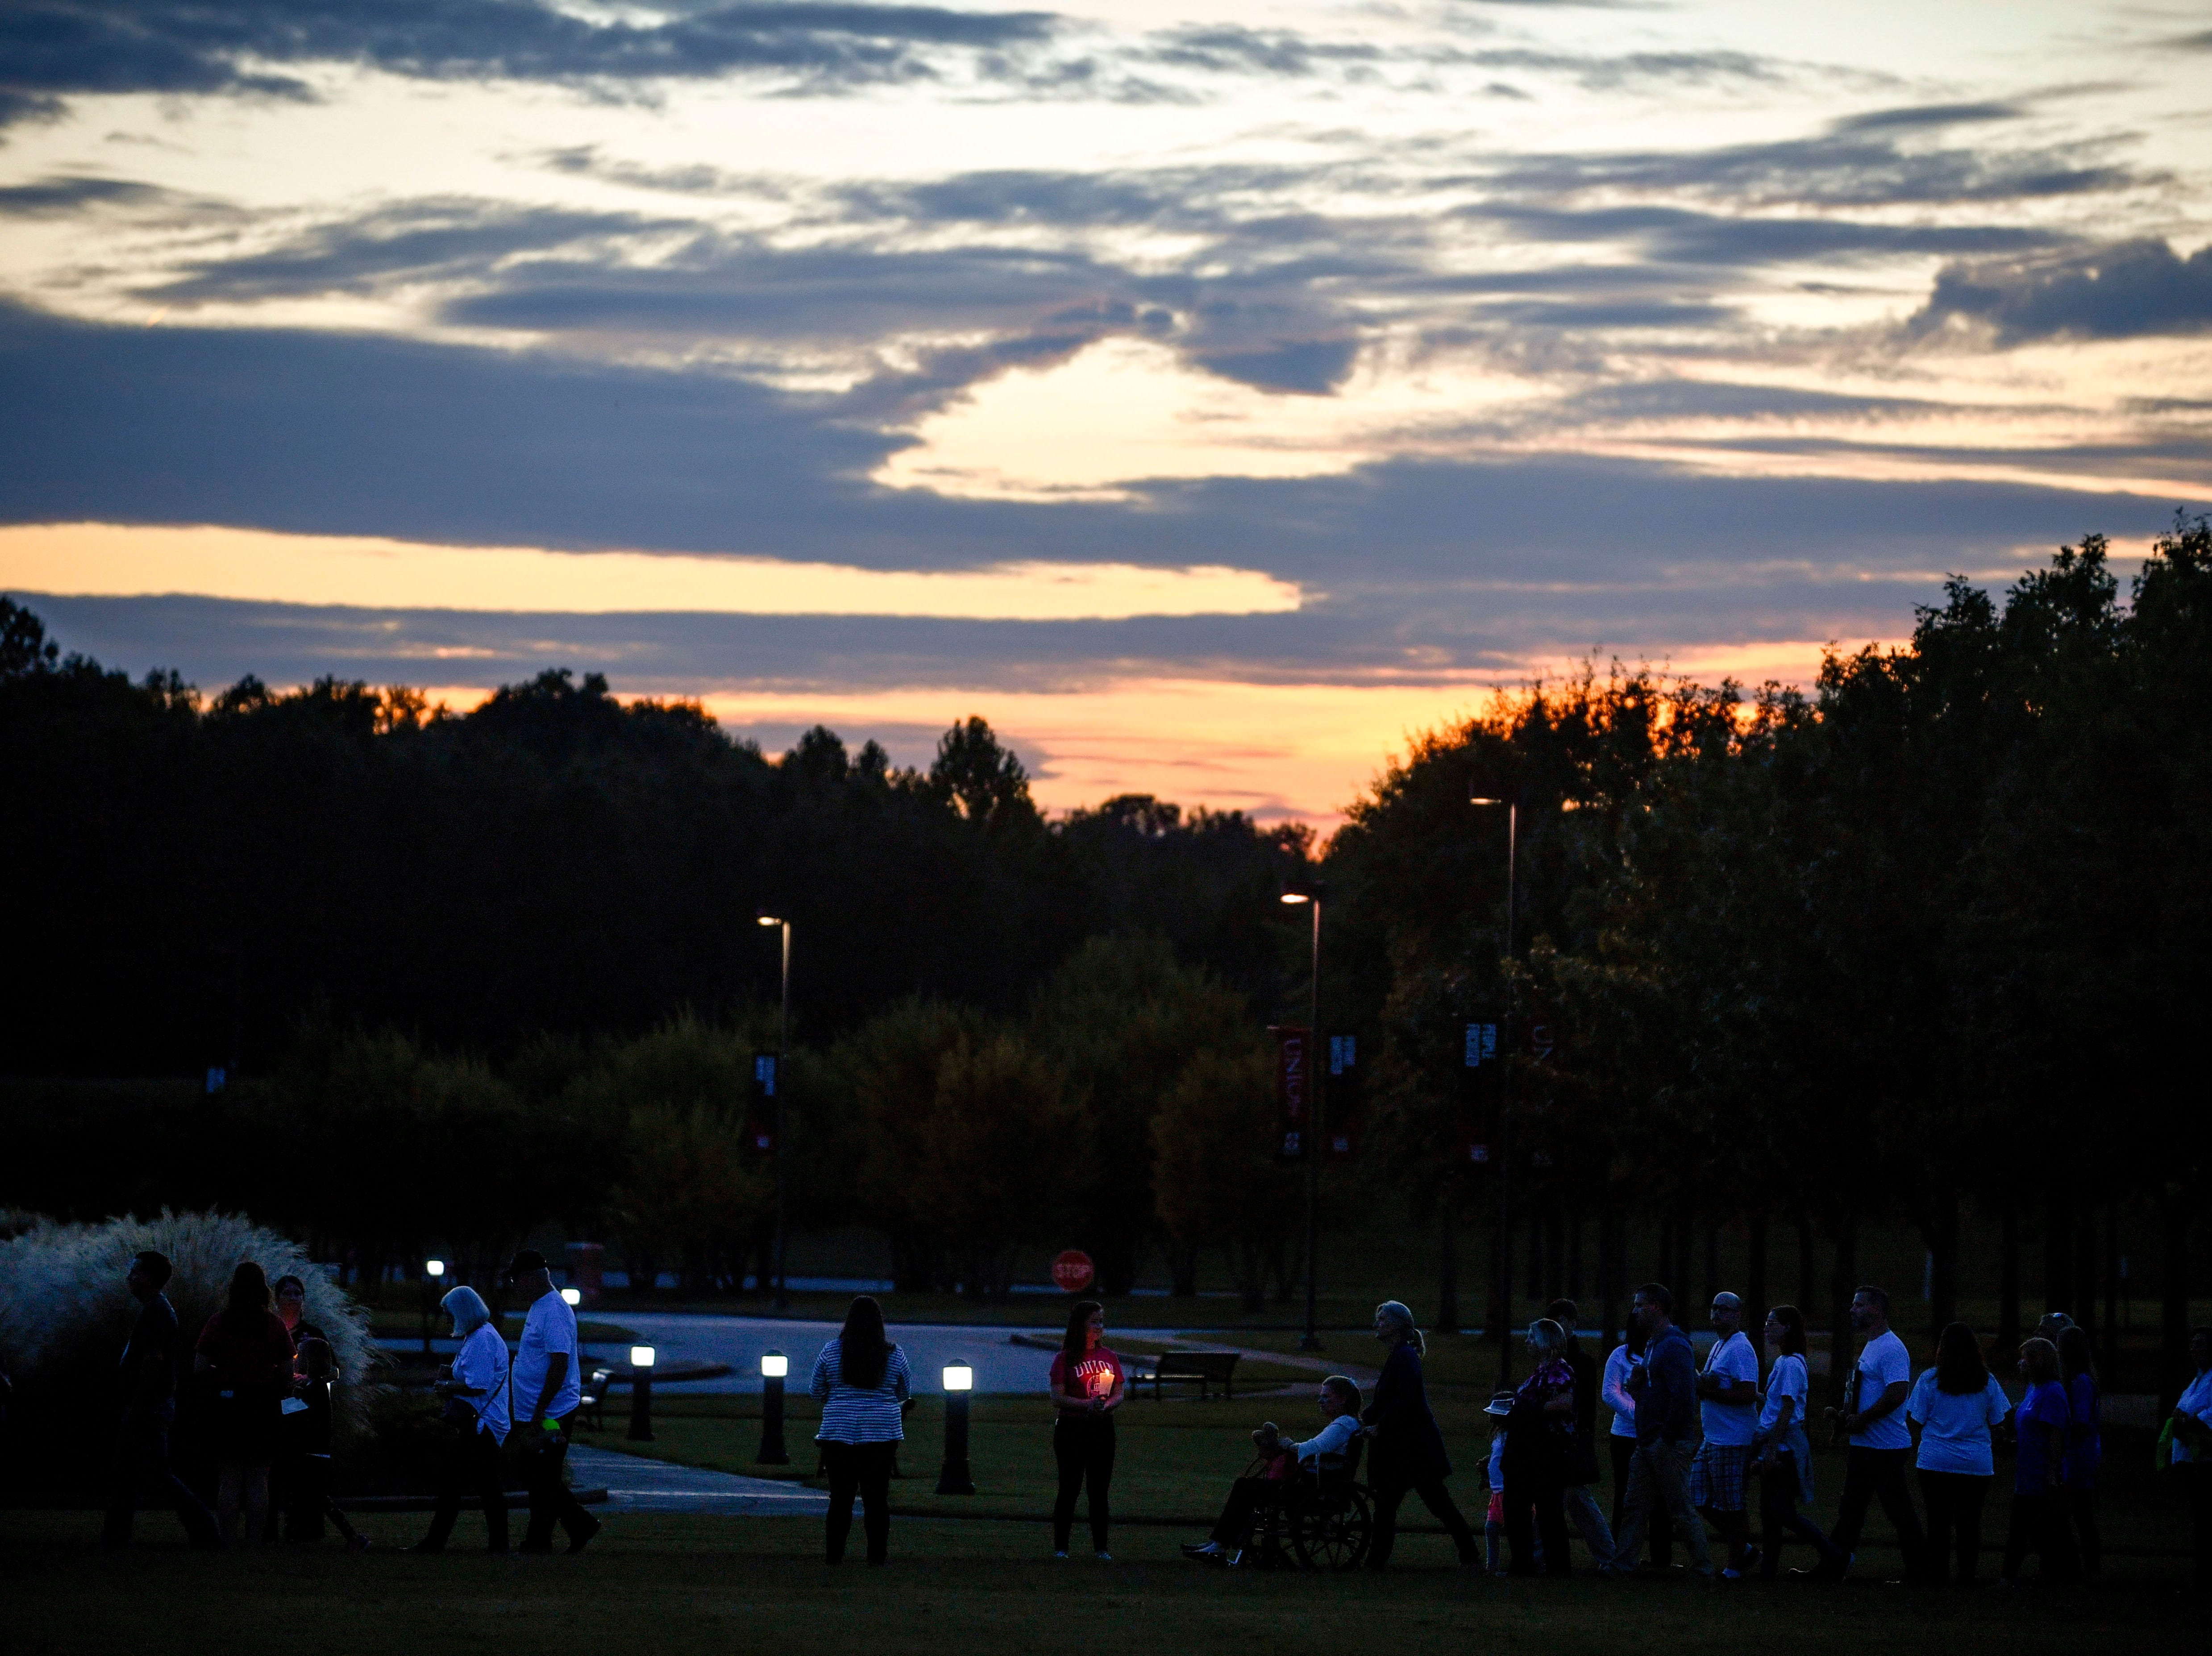 Attendees walk between Union University students holding a candlelight vigil during the annual Remember Me Walk hosted at Union University in Jackson, Tenn., on Monday, Oct. 1, 2018.